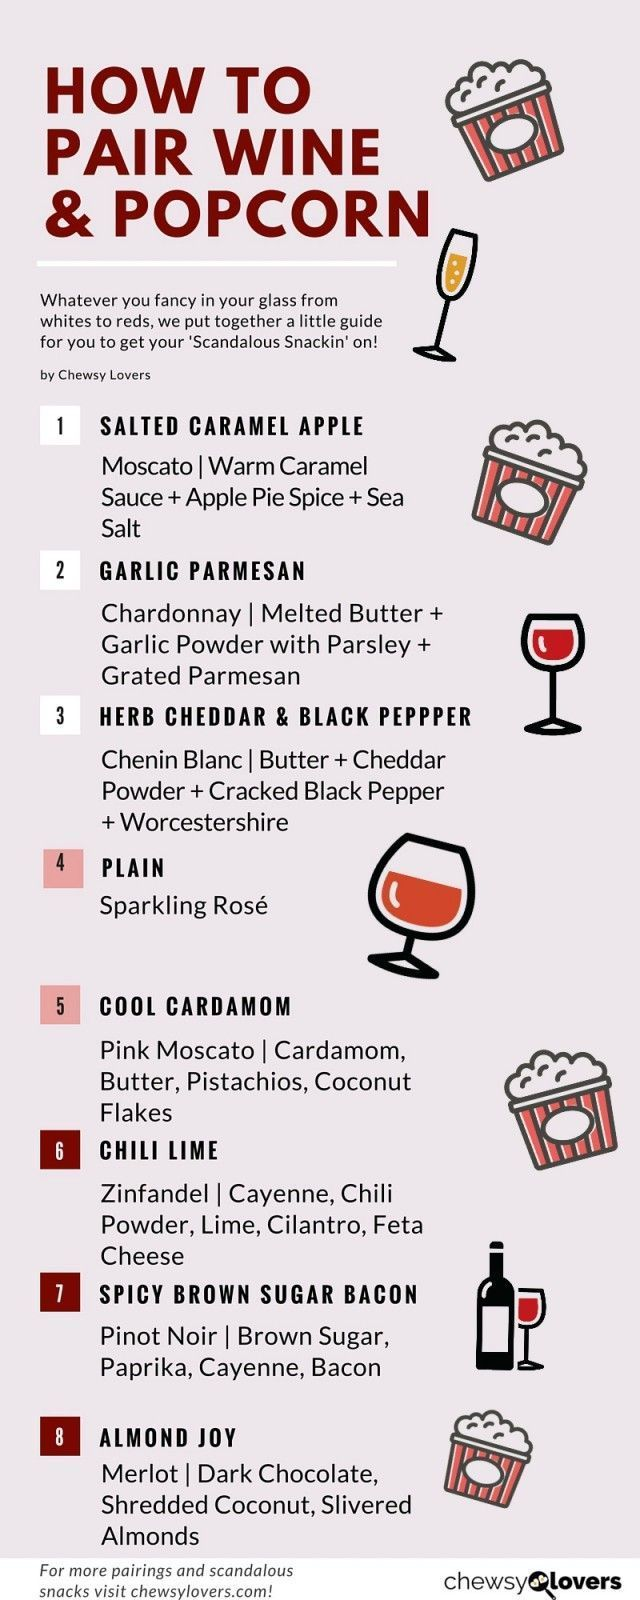 Scandalous Snacks: Delicious Popcorn and Wine Pairings